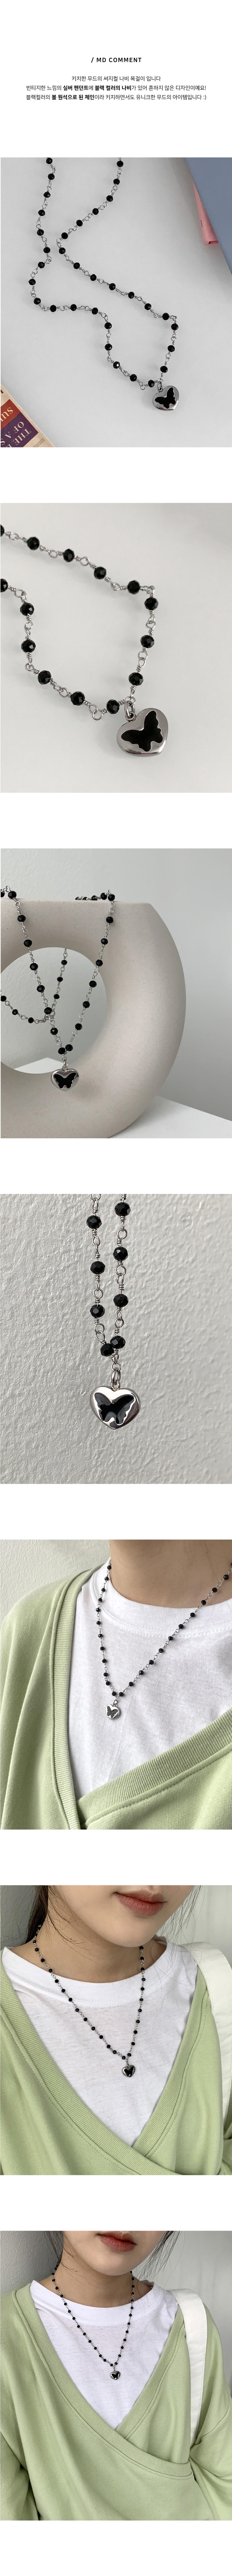 Jelly Black Butterfly Surgical Ball Chain Necklace